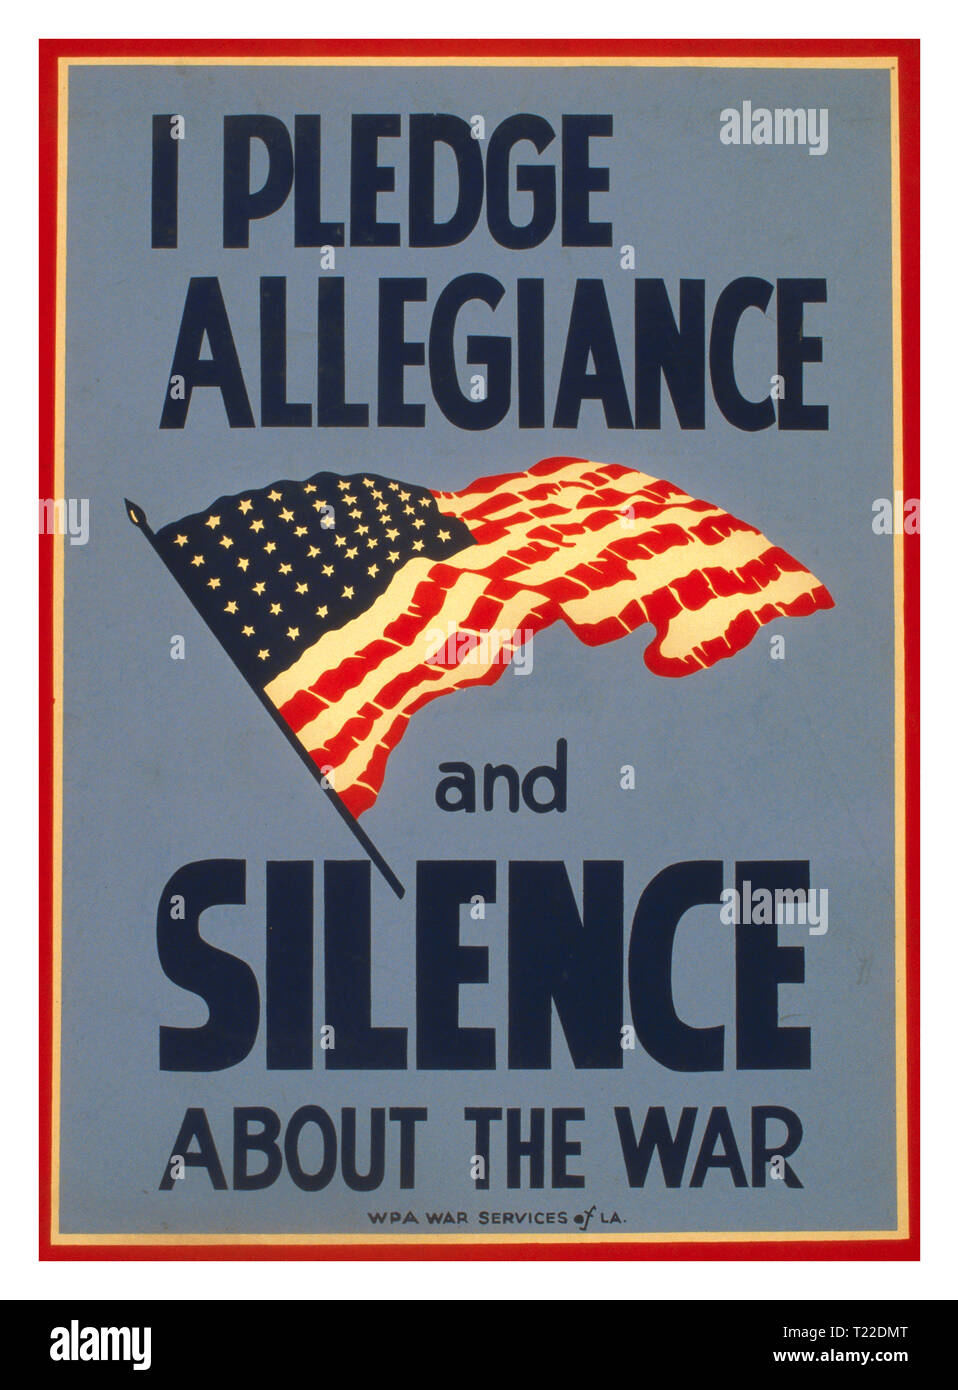 "Vintage 1940's Propaganda WW2 Poster USA ""I pledge allegiance and silence about the war""  World War II Poster promoting patriotism and suggesting that careless communication may be harmful to the war effort, showing the American Stars and Stripes flag. Thomas A. Byrne - designer. 1943 - Stock Image"